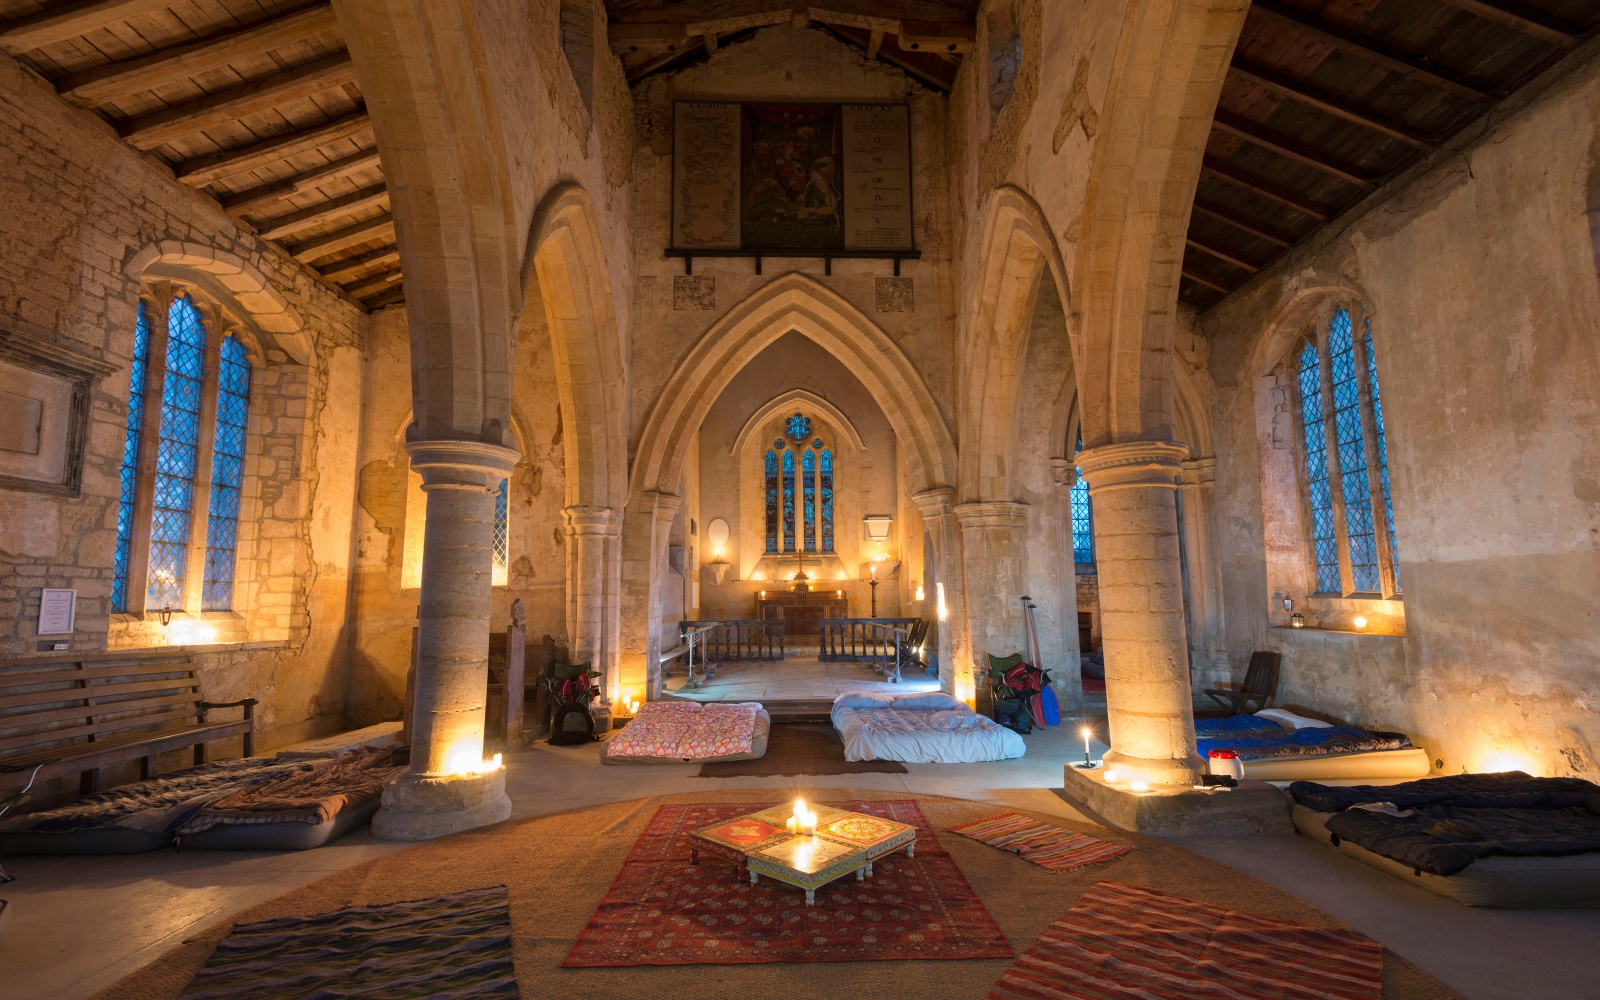 Camping in Churches: the Accommodation Trend You've Been Praying For